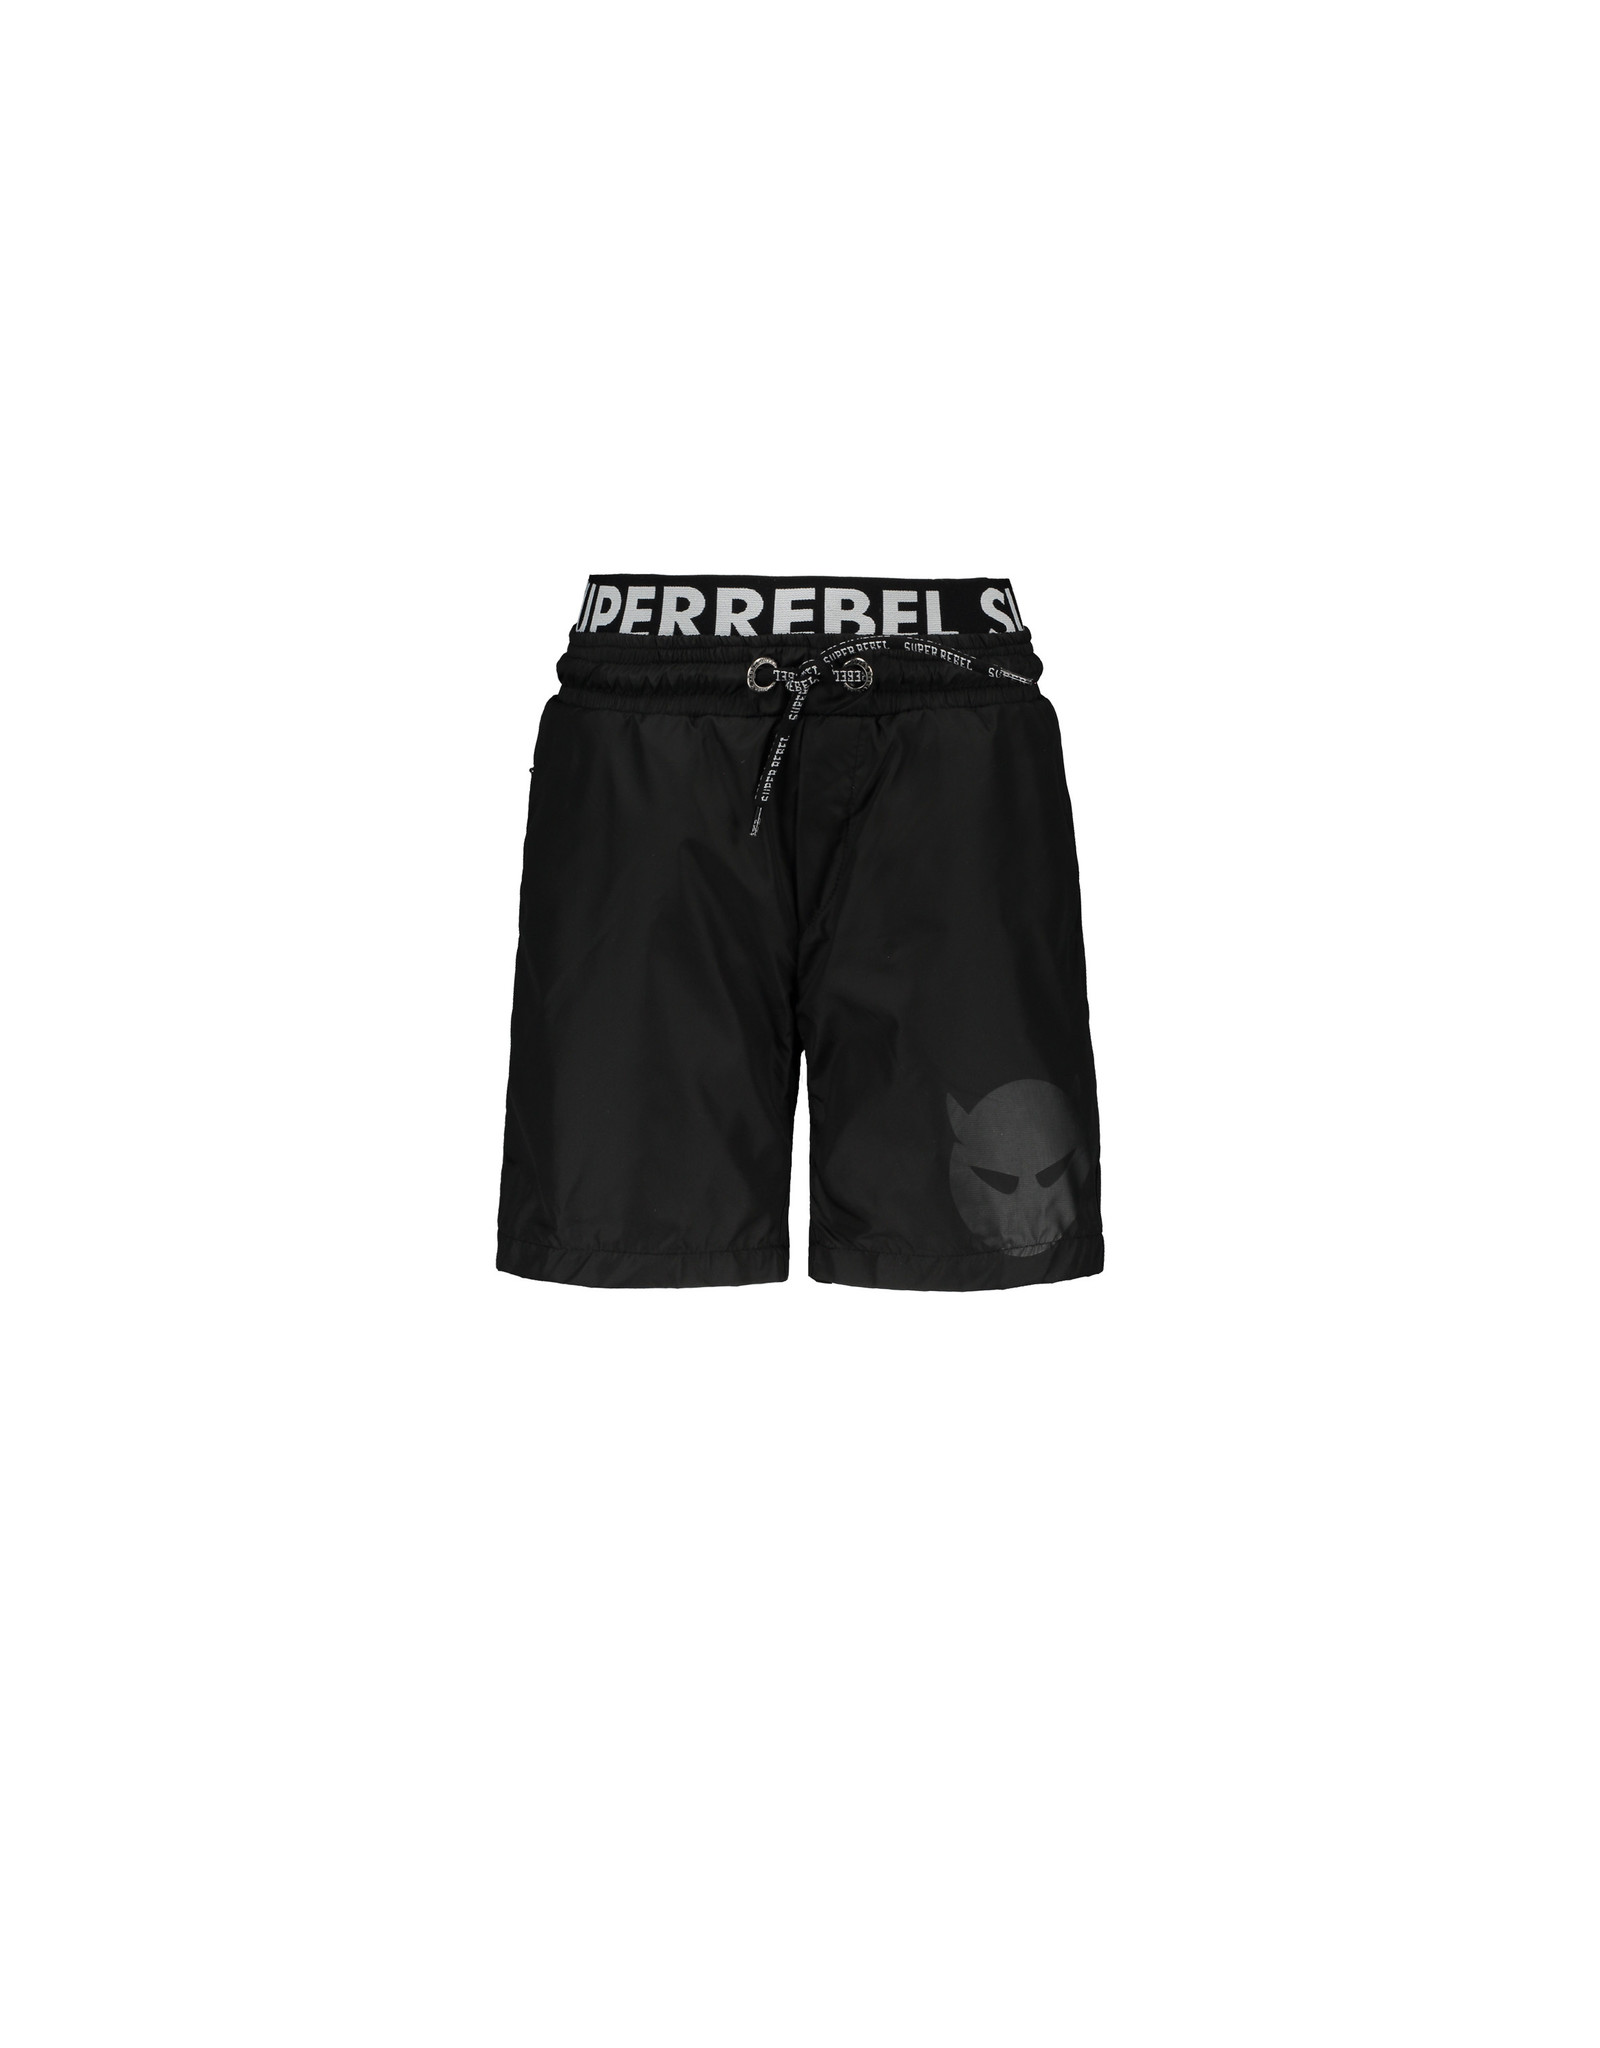 Super Rebel SuperRebel Solid Swim Short With Double Waistband